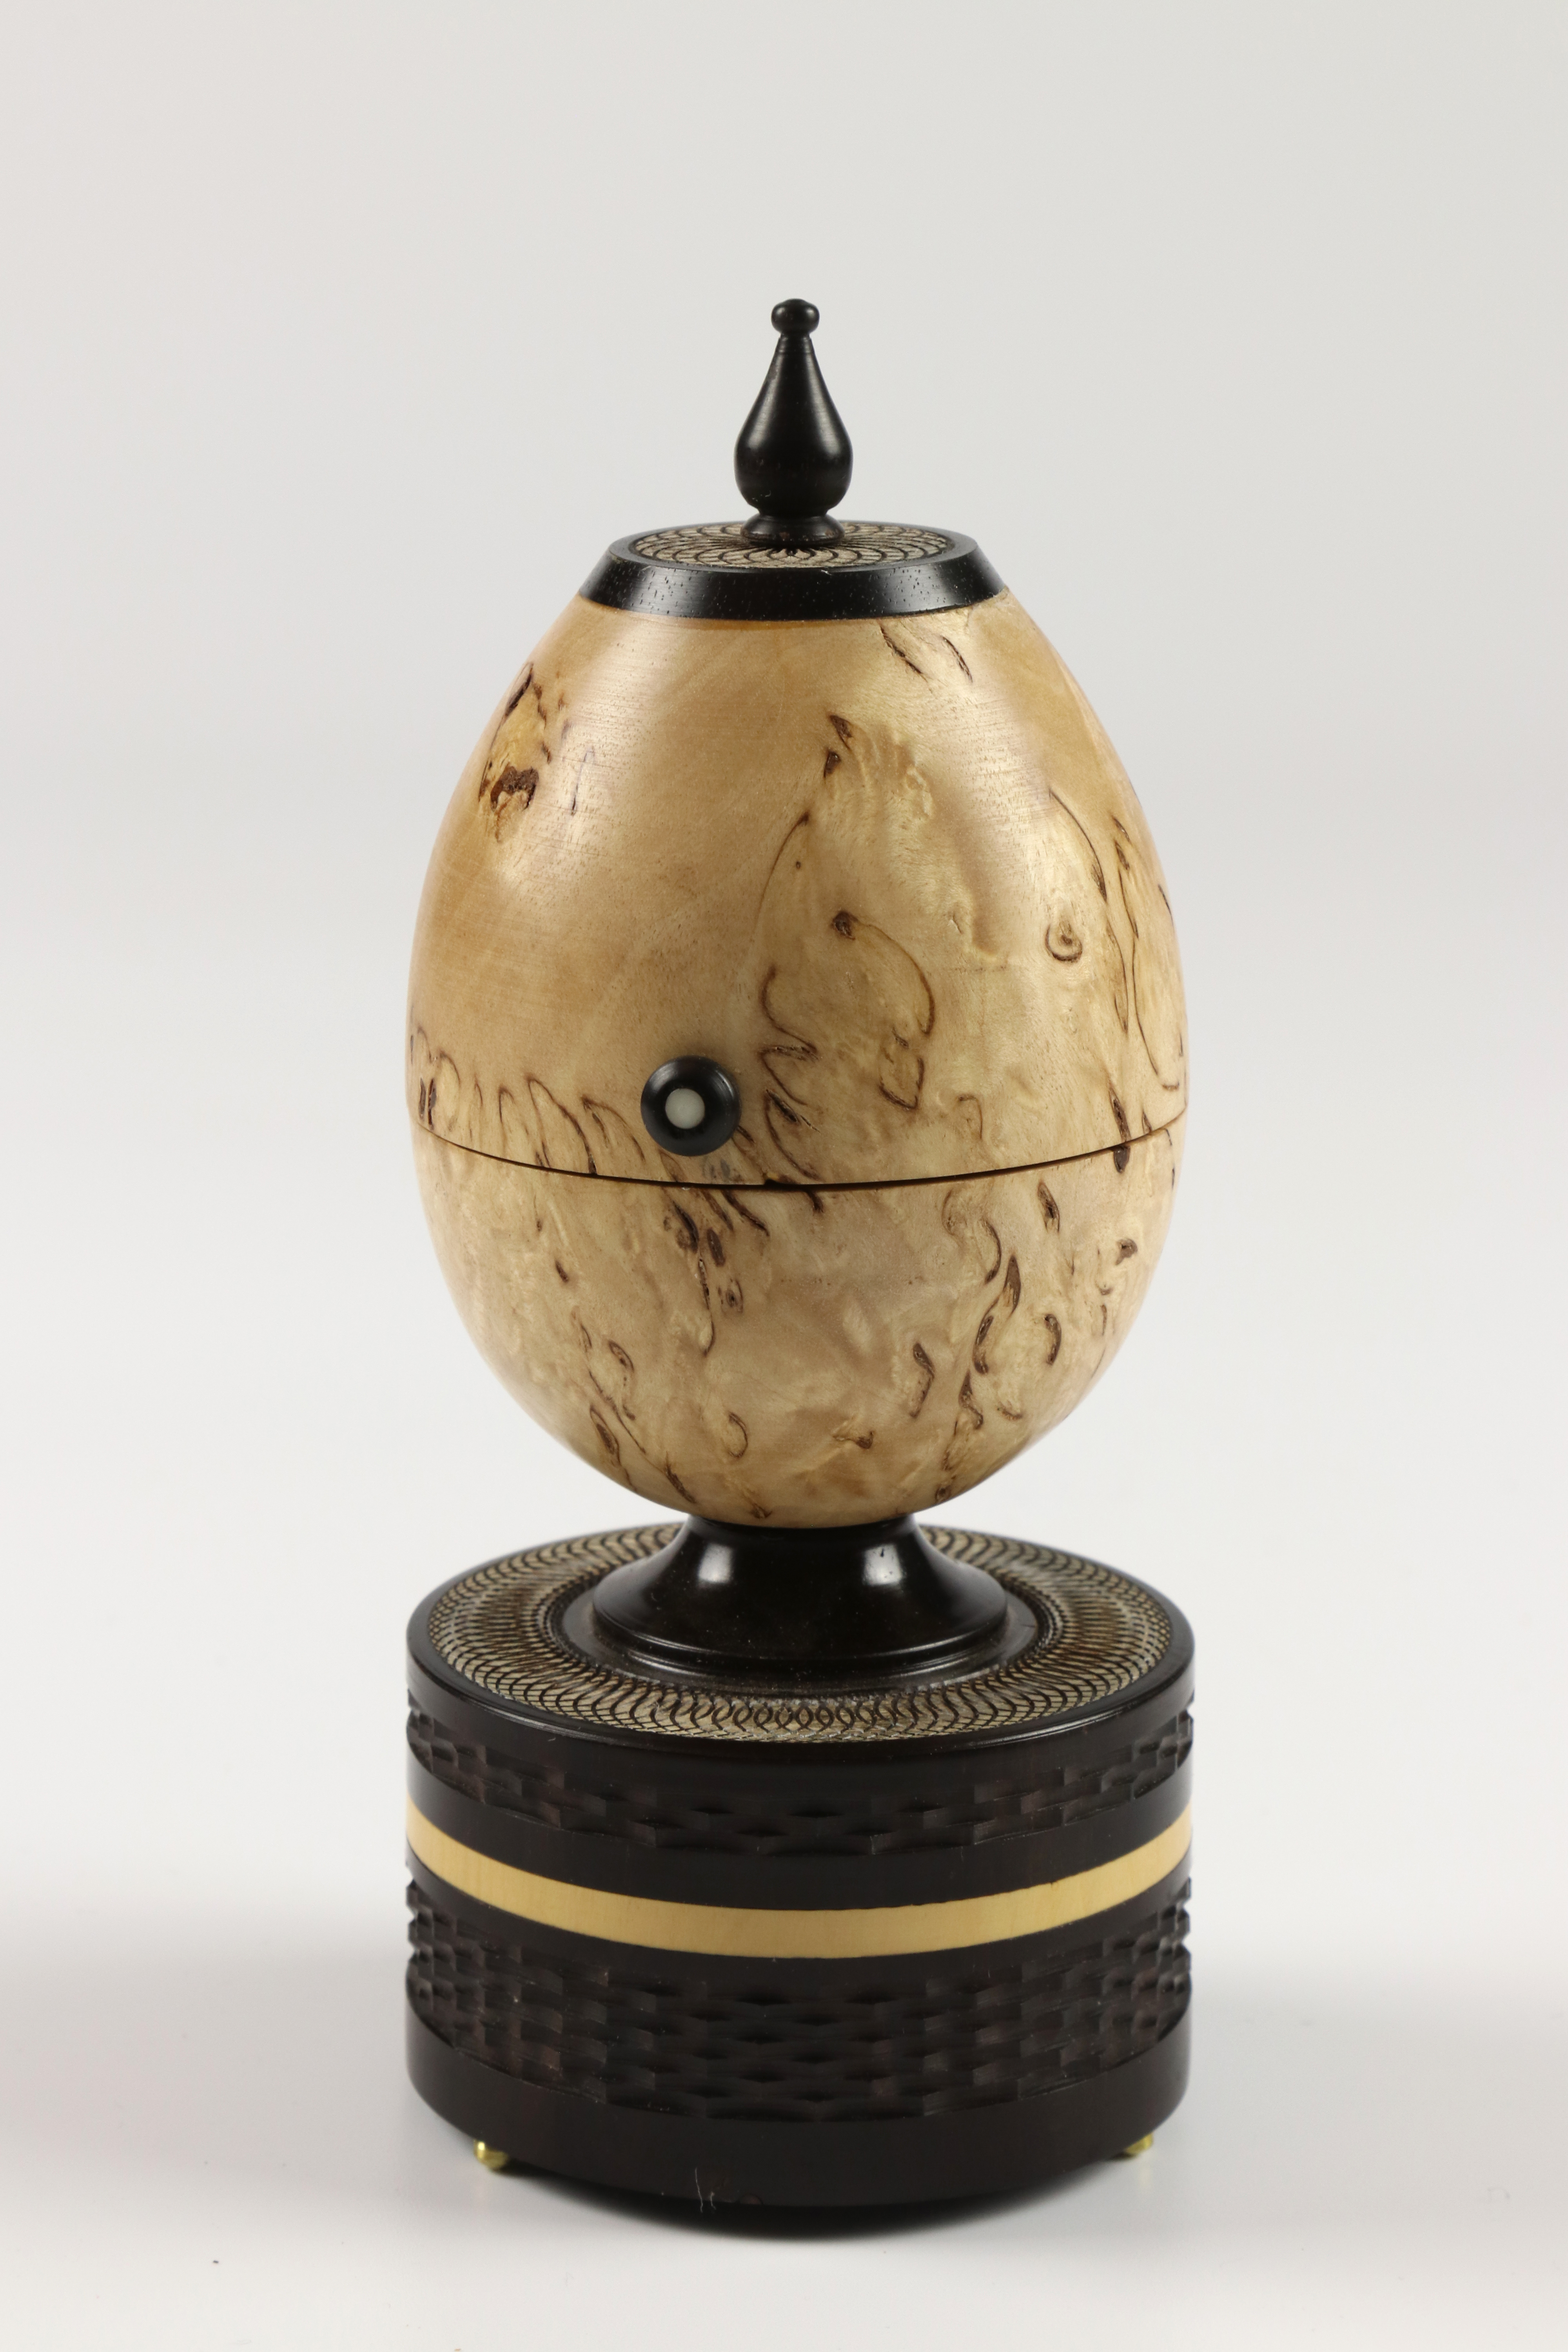 Lot 95 - Reg Hawthorne (UK) masur birch, africam blackwood and brass egg box 16x7cm. Signed